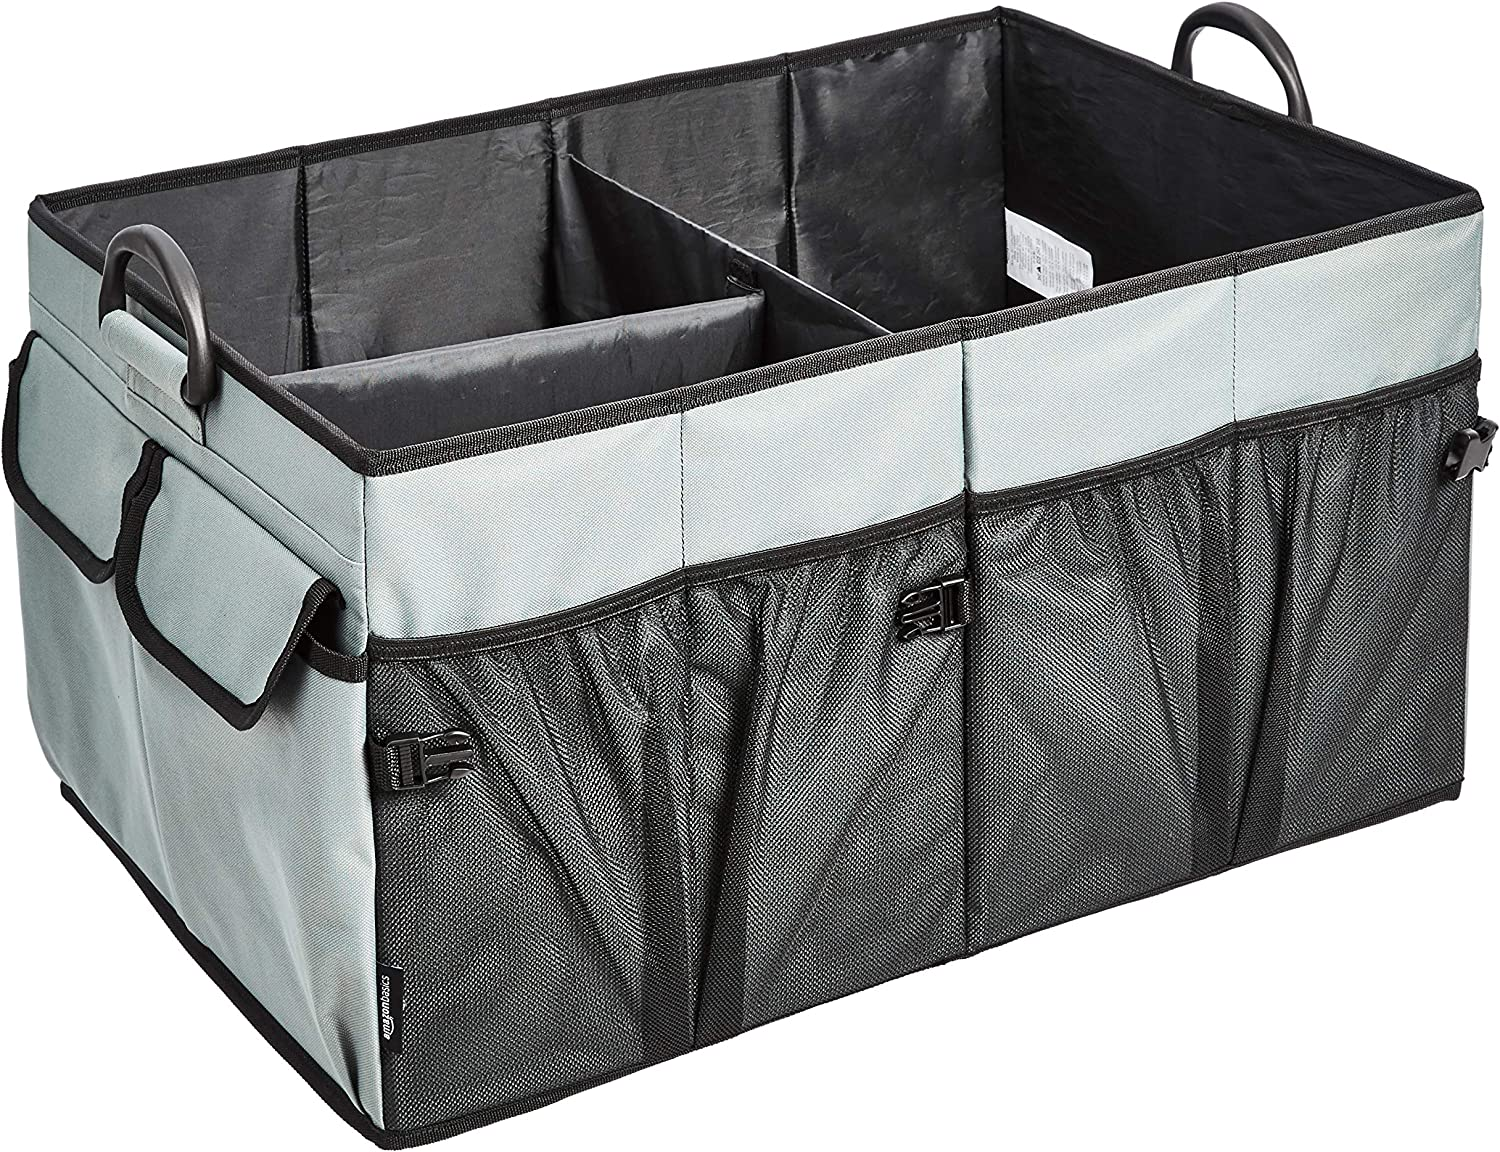 Basics Trunk Organizer with Collapsible Design for Cars Black and Trucks SUVs